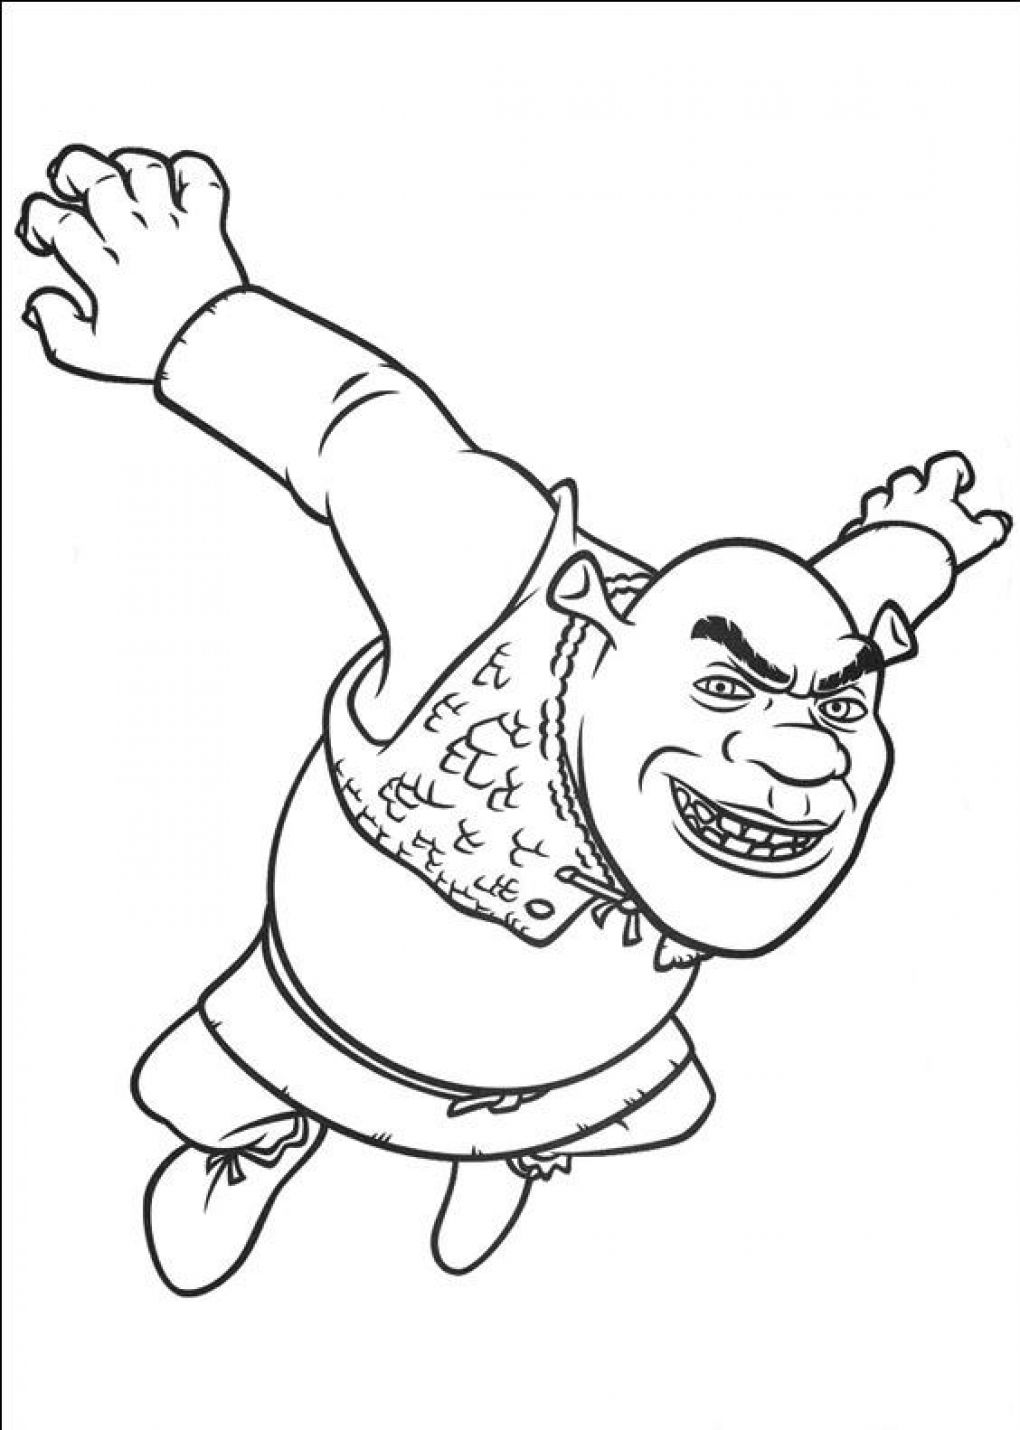 Shrek Coloring Pages Shrek Coloring Pages  Coloring Kids